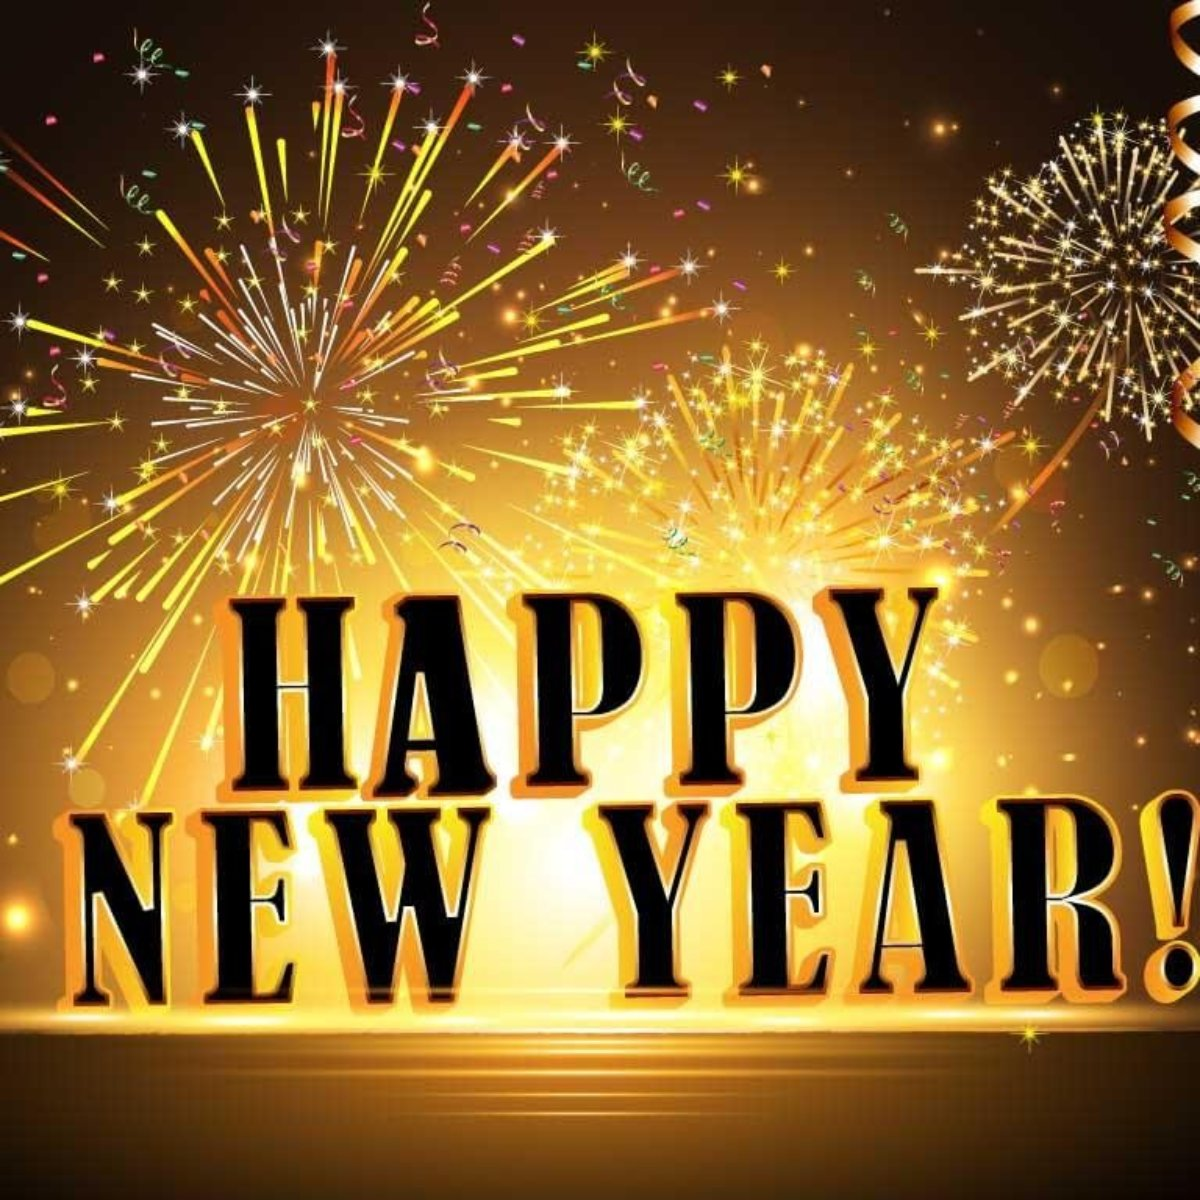 Happy new year 2019 ! We wish you all the best to you and your relatives